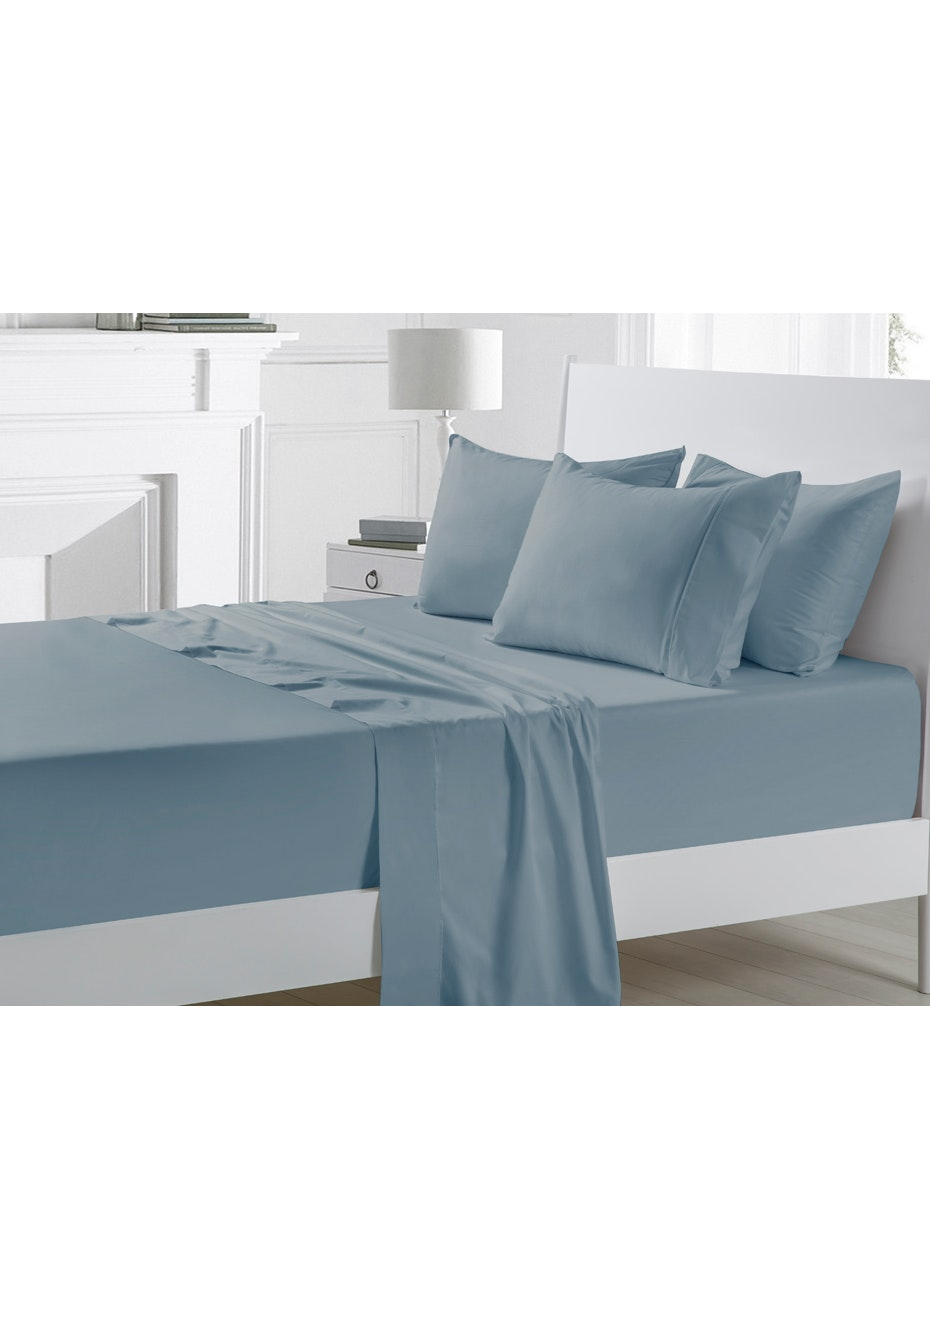 Arctic 300TC Cotton Sateen Sheet Set - Queen Bed